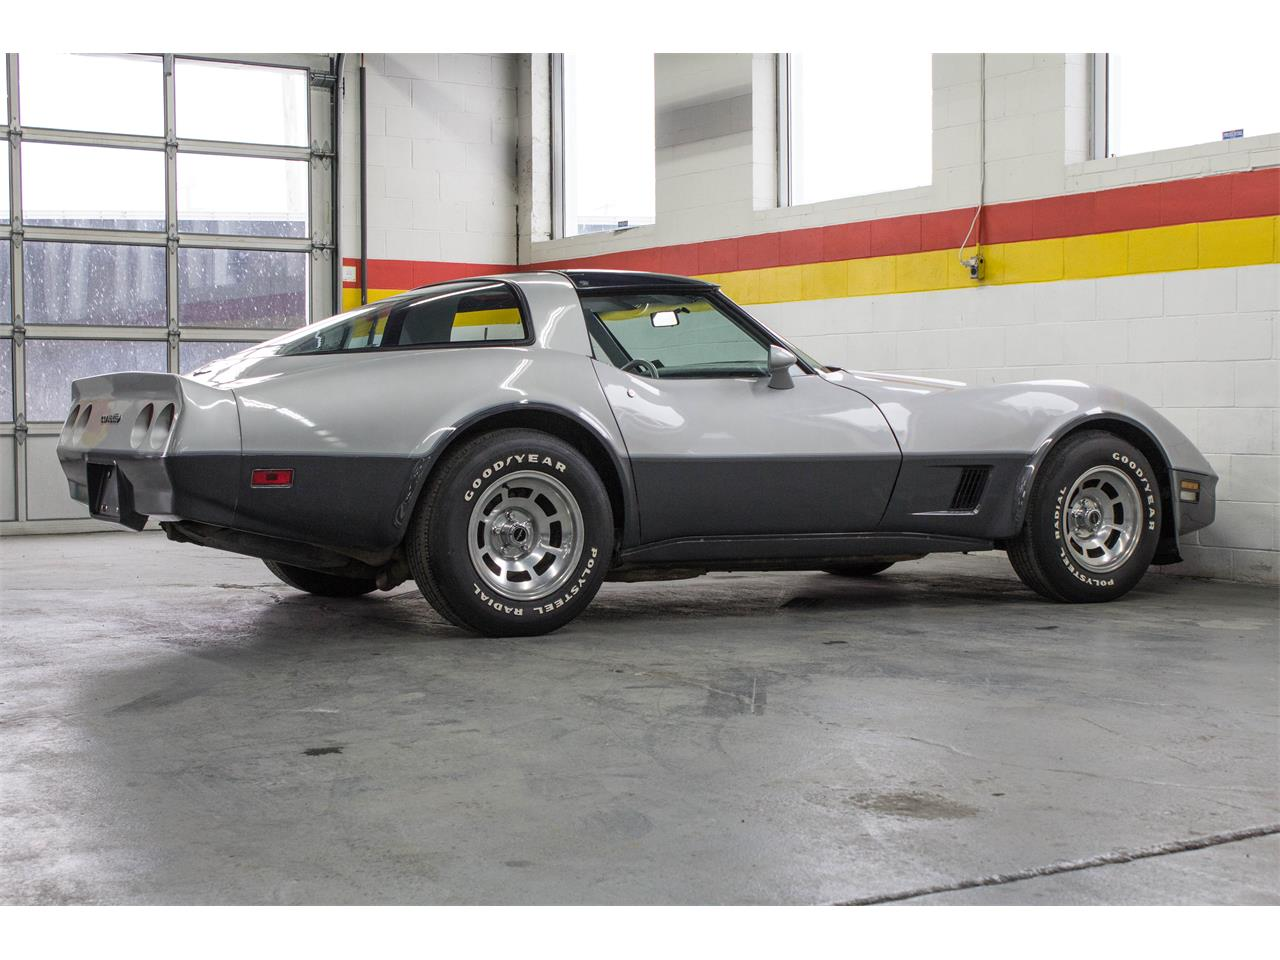 Large Picture of '81 Corvette located in Quebec - $26,900.00 Offered by John Scotti Classic Cars - KKXW